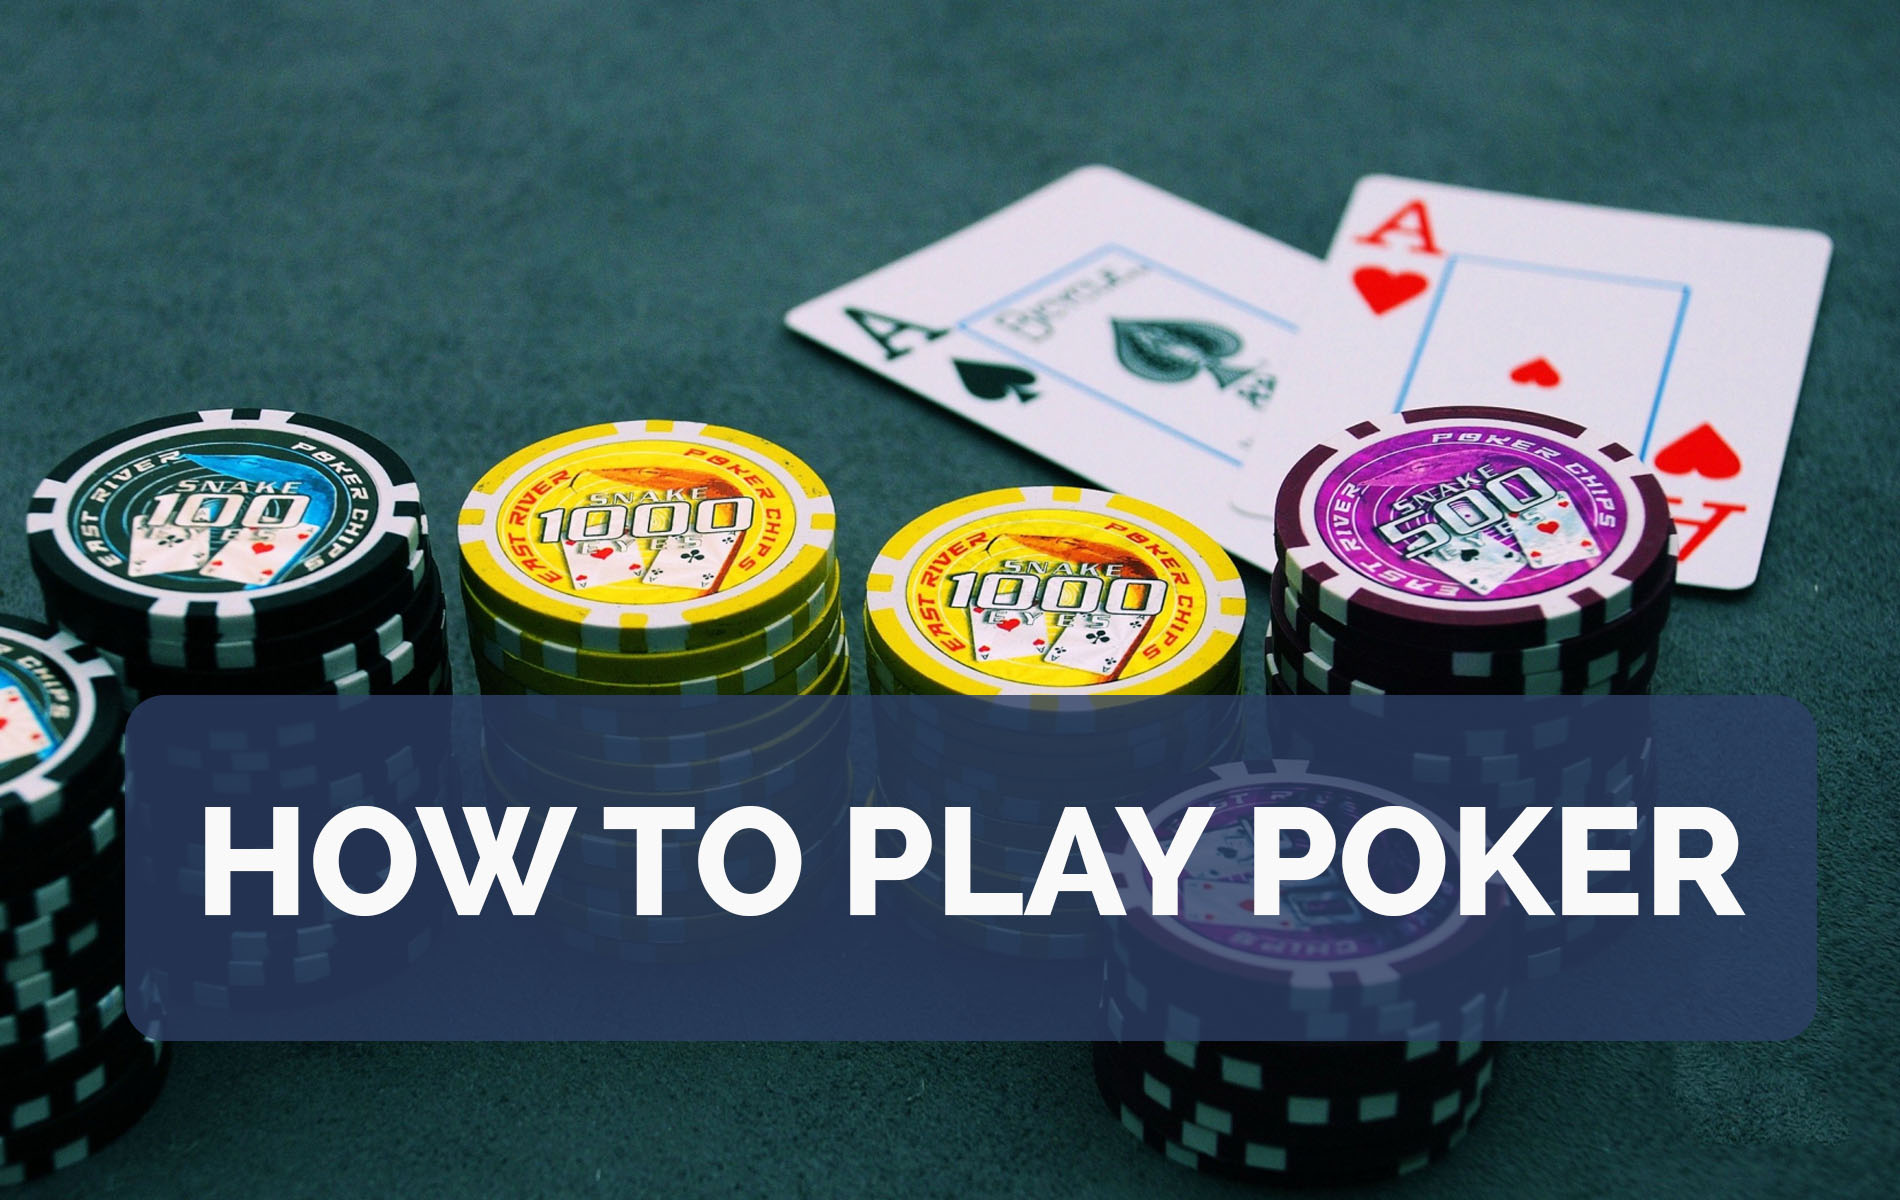 how-to-play-poker-online-in-ghana-for-money-z4glz